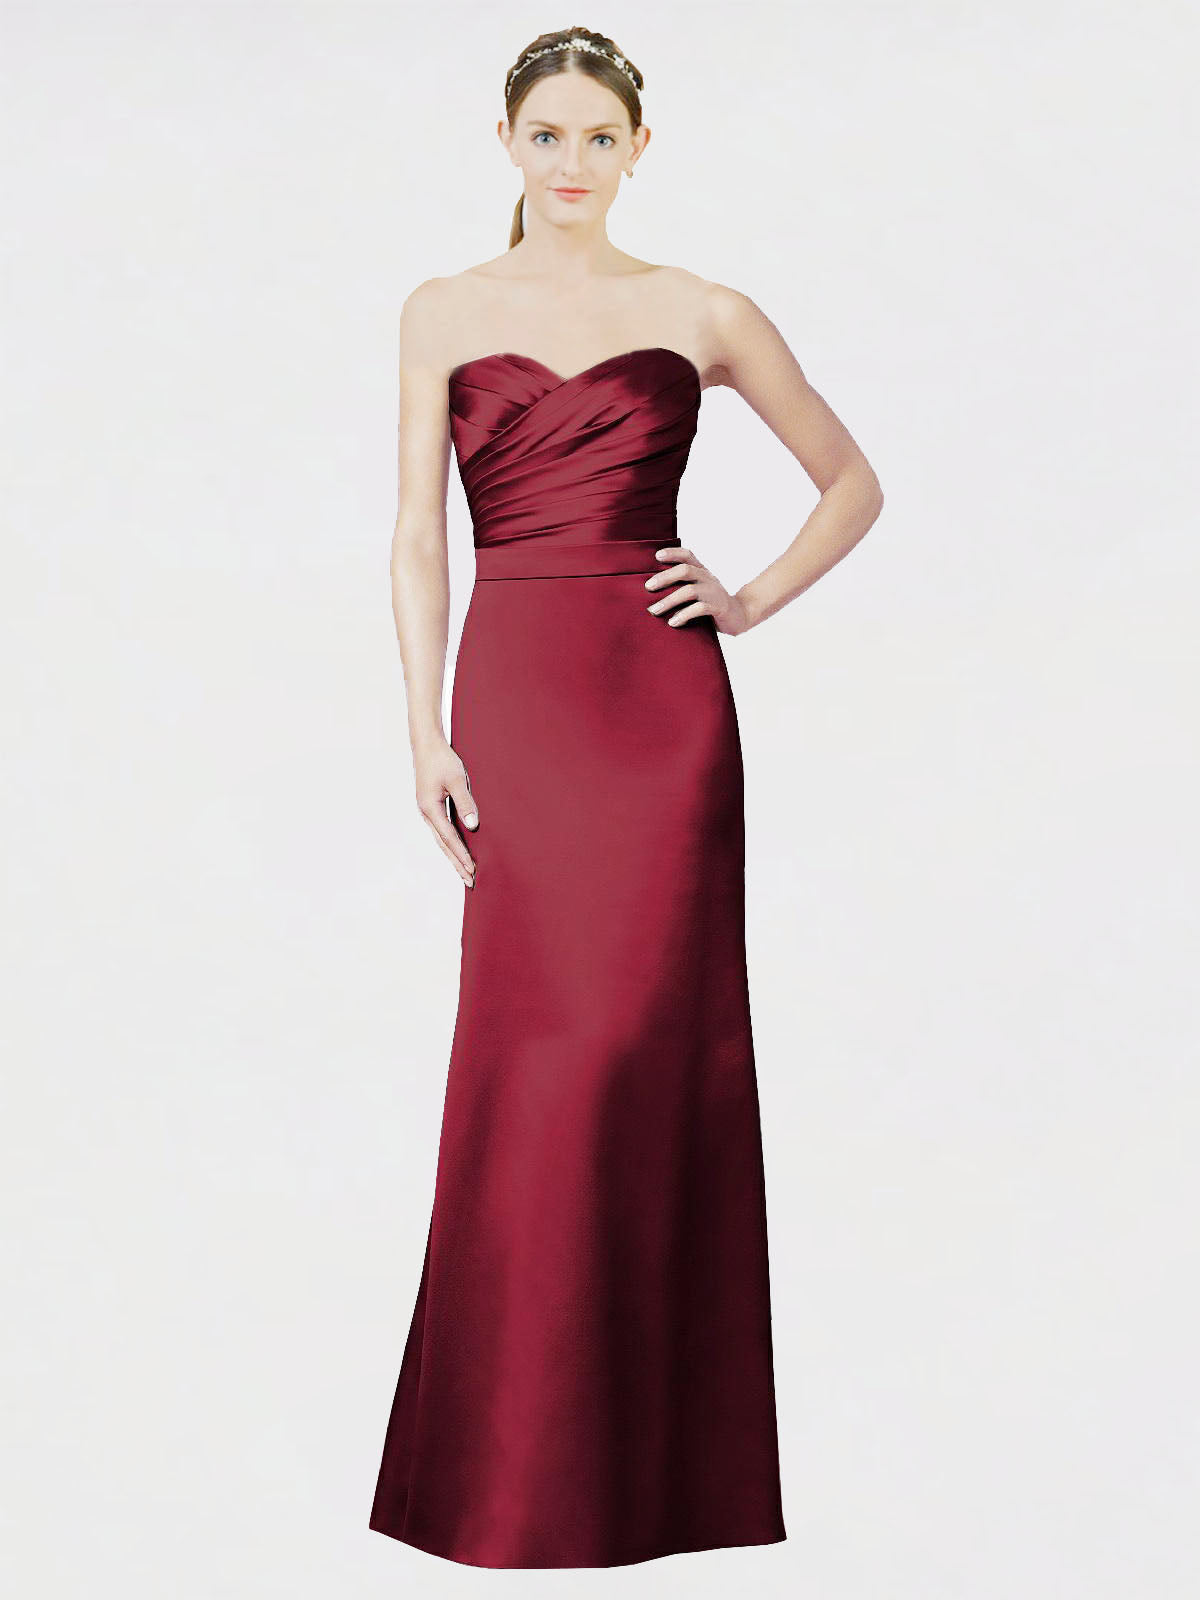 Long Mermaid Sweetheart, Strapless Sleeveless Burgundy Satin Bridesmaid Dress Evelynn